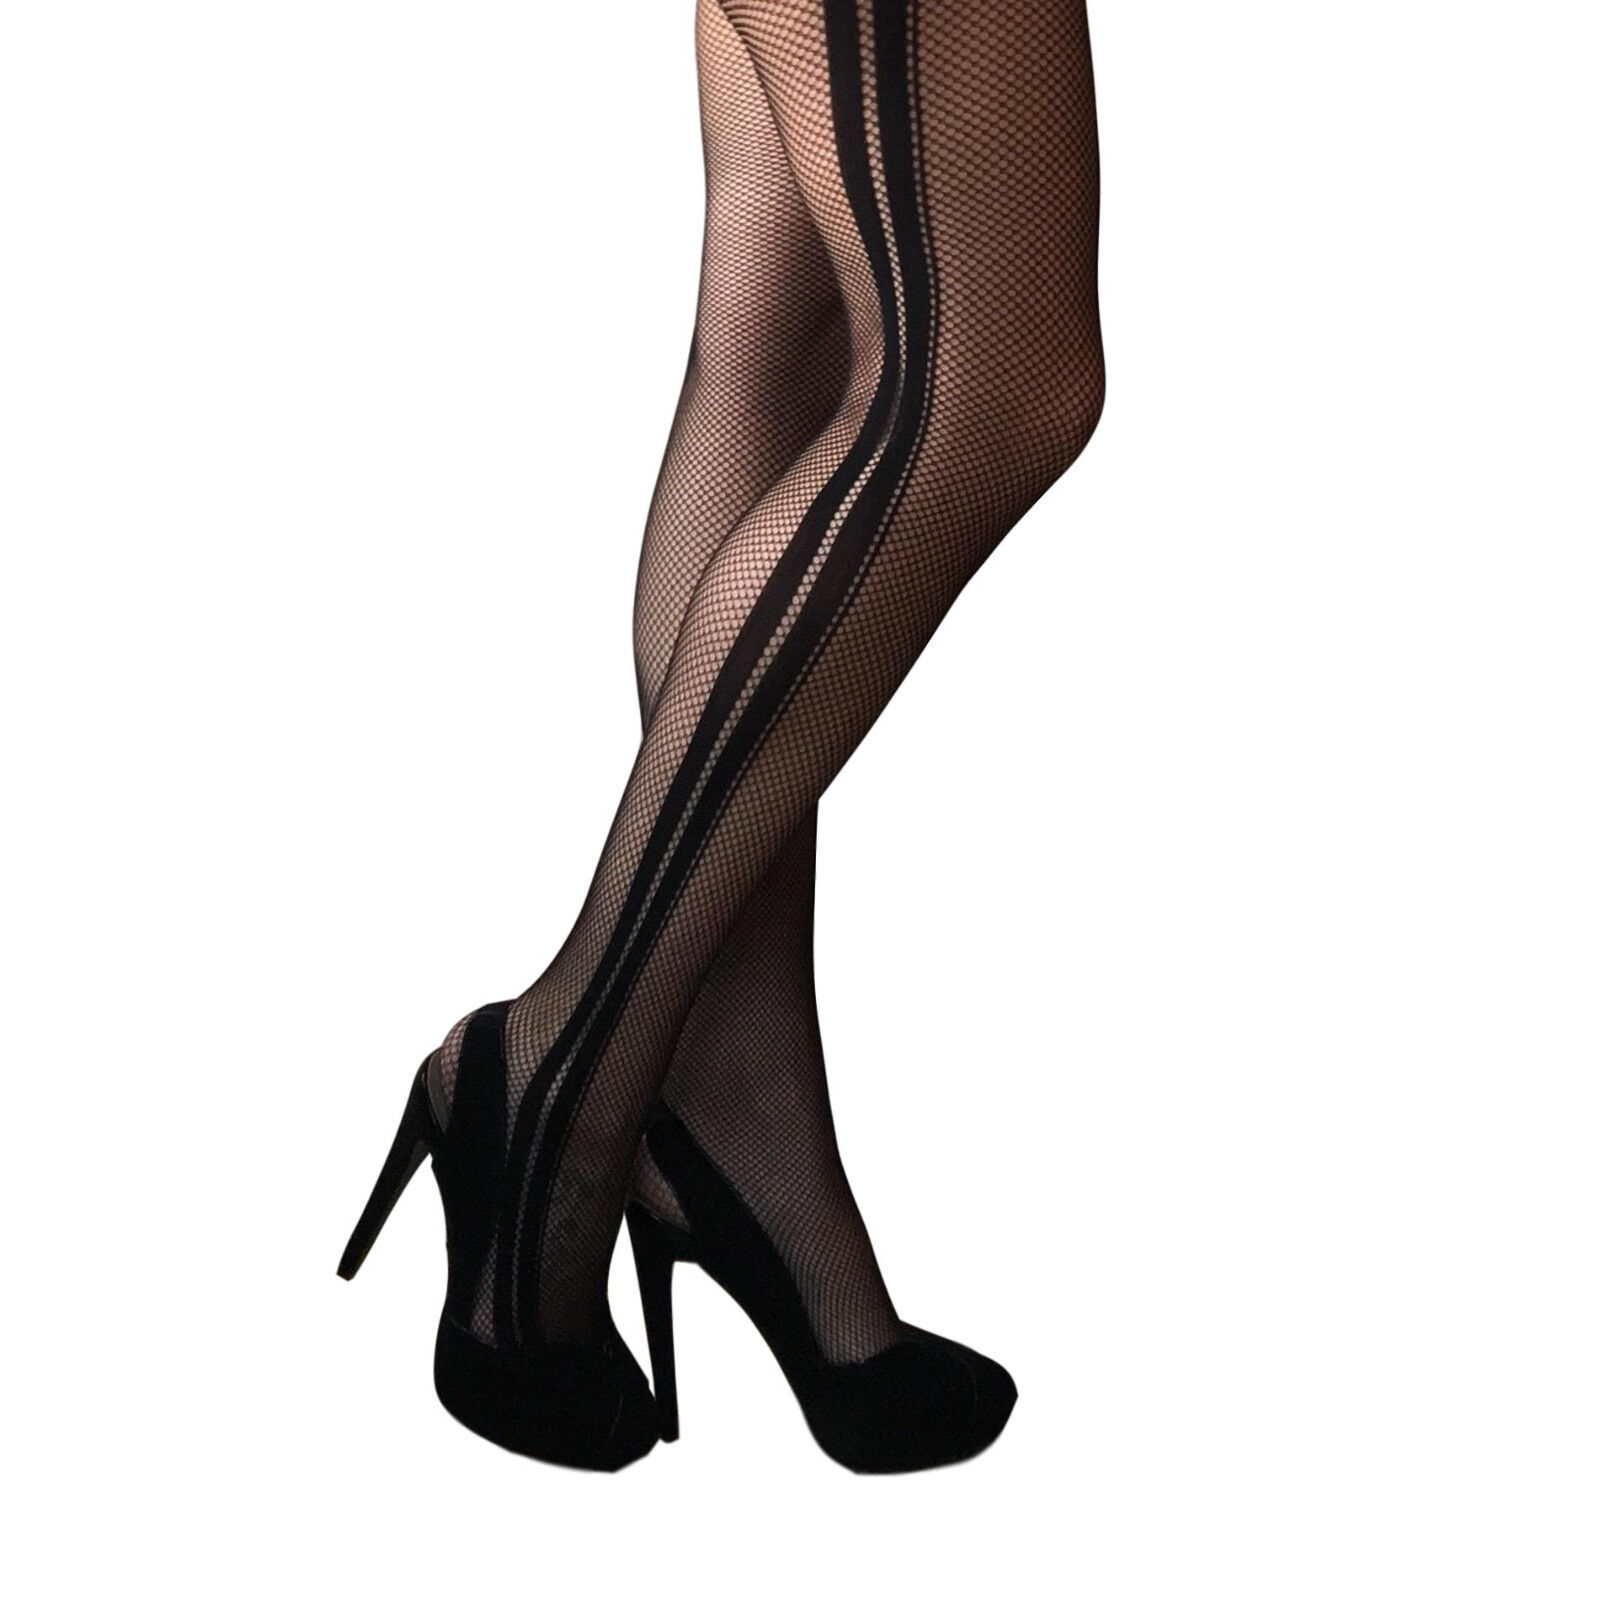 Jonathan Aston Ribbed Over the Knee Tights Polyamide JAWX 1 Pair Black